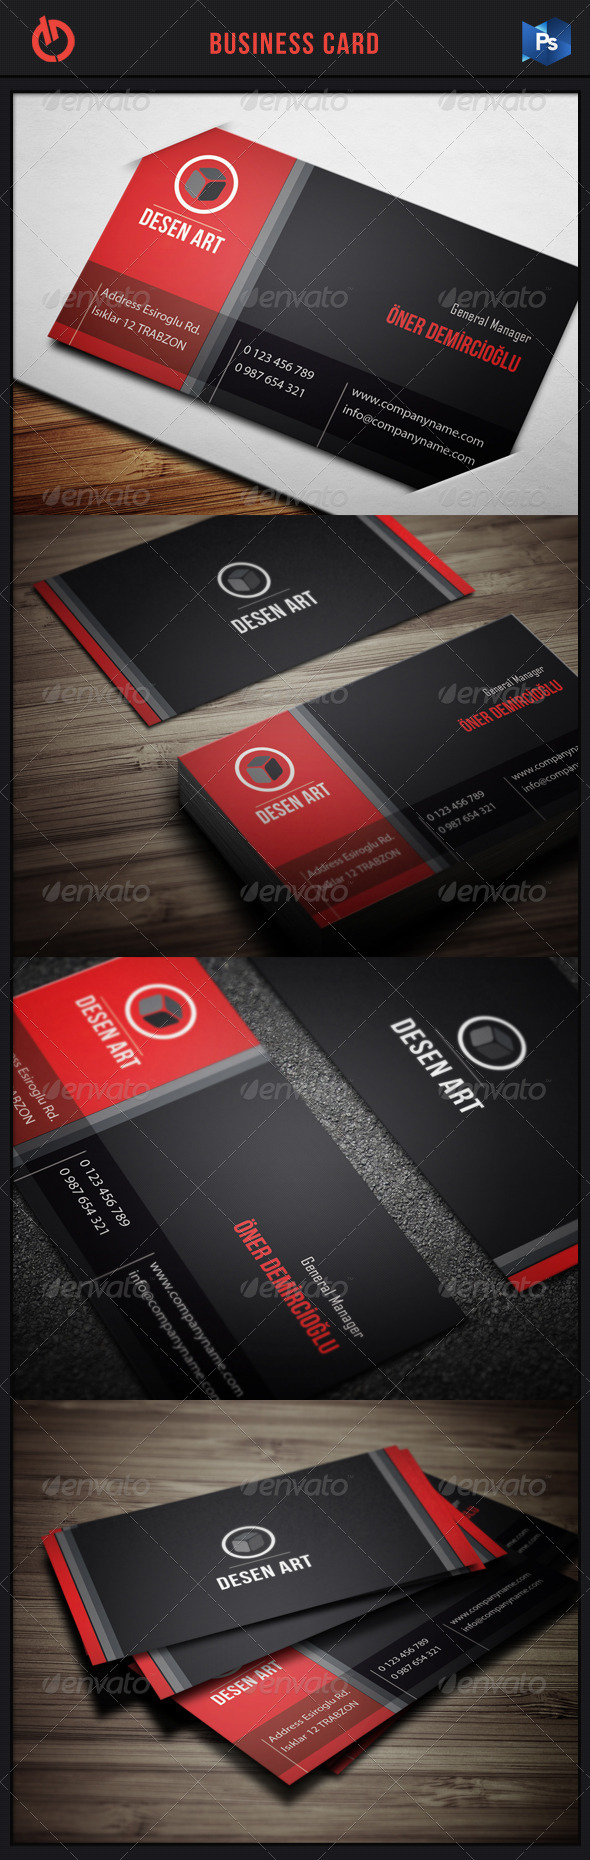 GraphicRiver Business Card 11 3549251